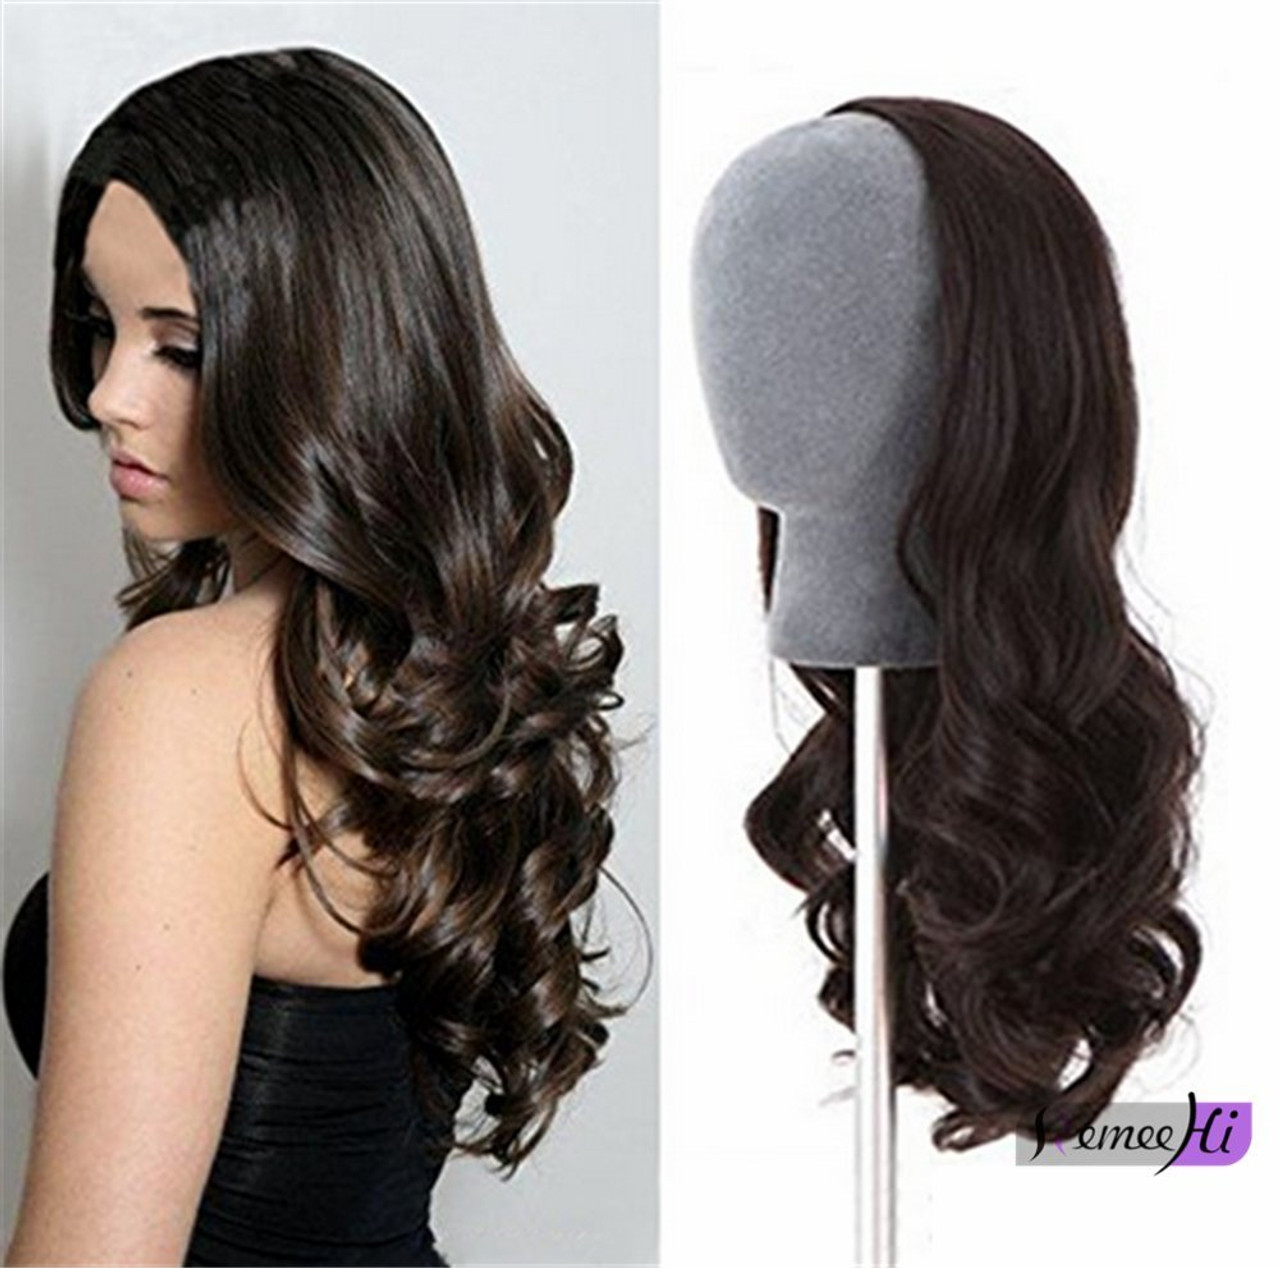 Remeehi Wavy Half Wig Clip In Hair Extension Indian Remy Human 100